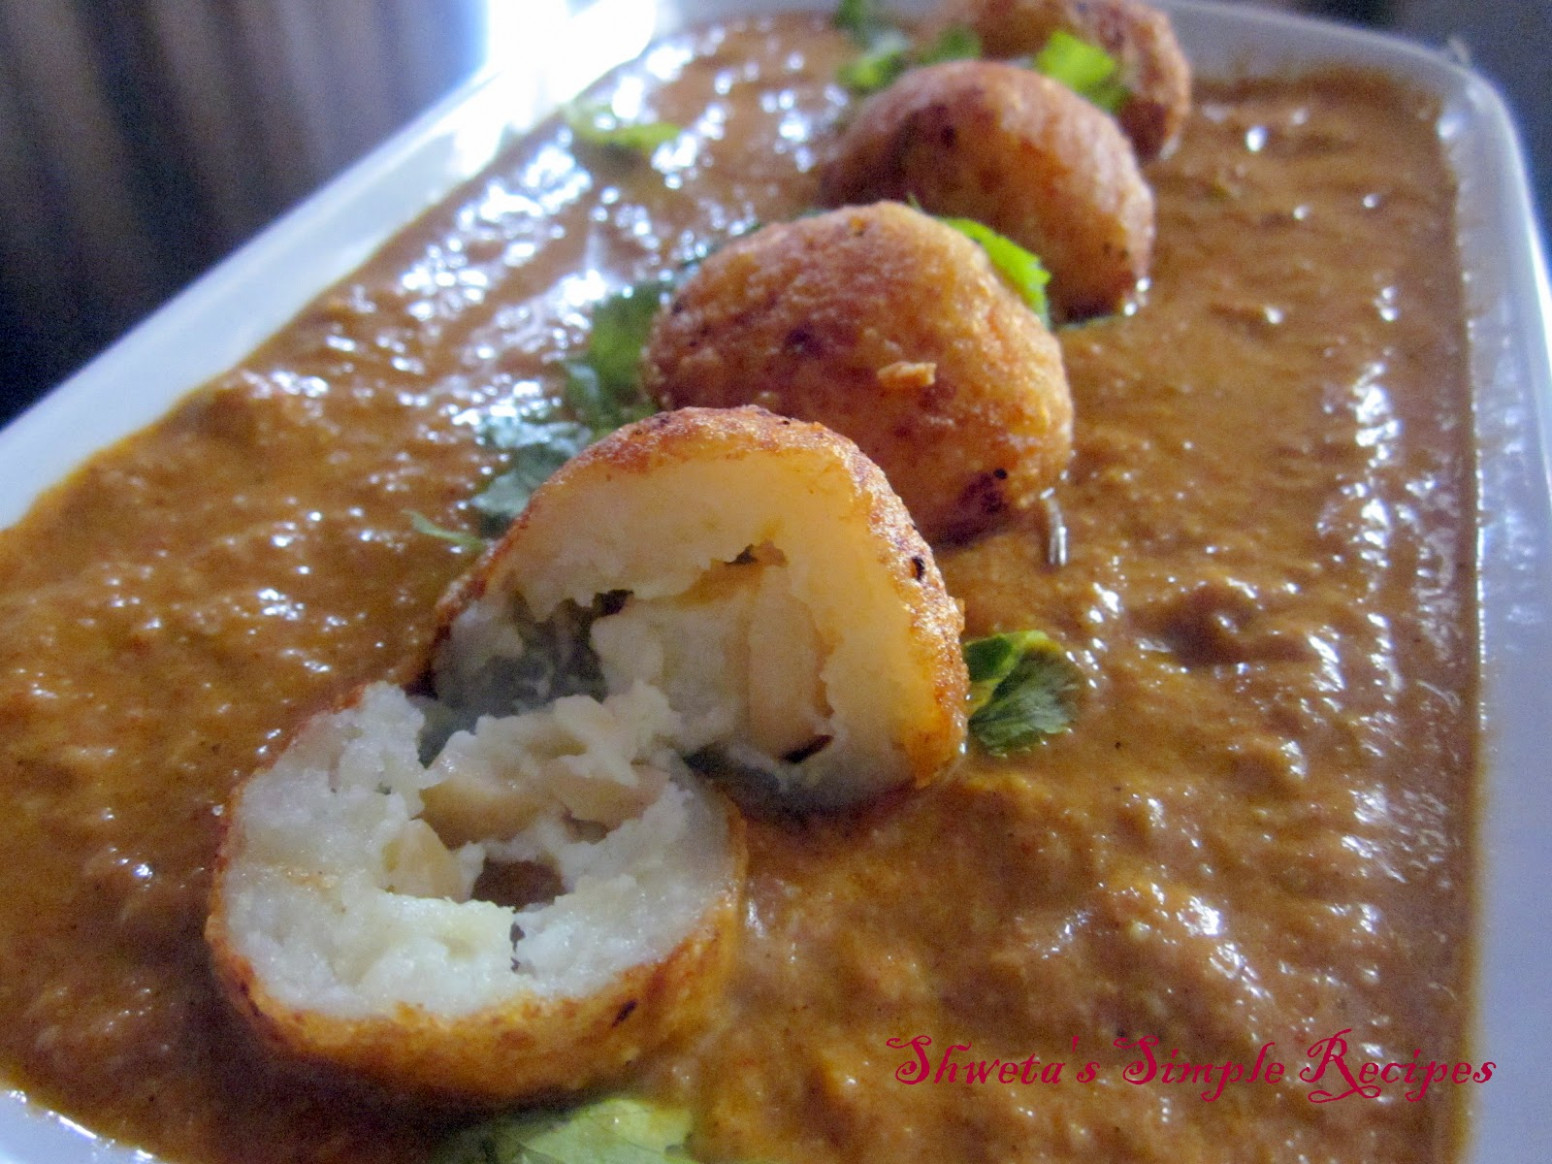 Shweta's Simple Recipes: Shahi Kofta Curry - recipe vegetarian kofta curry